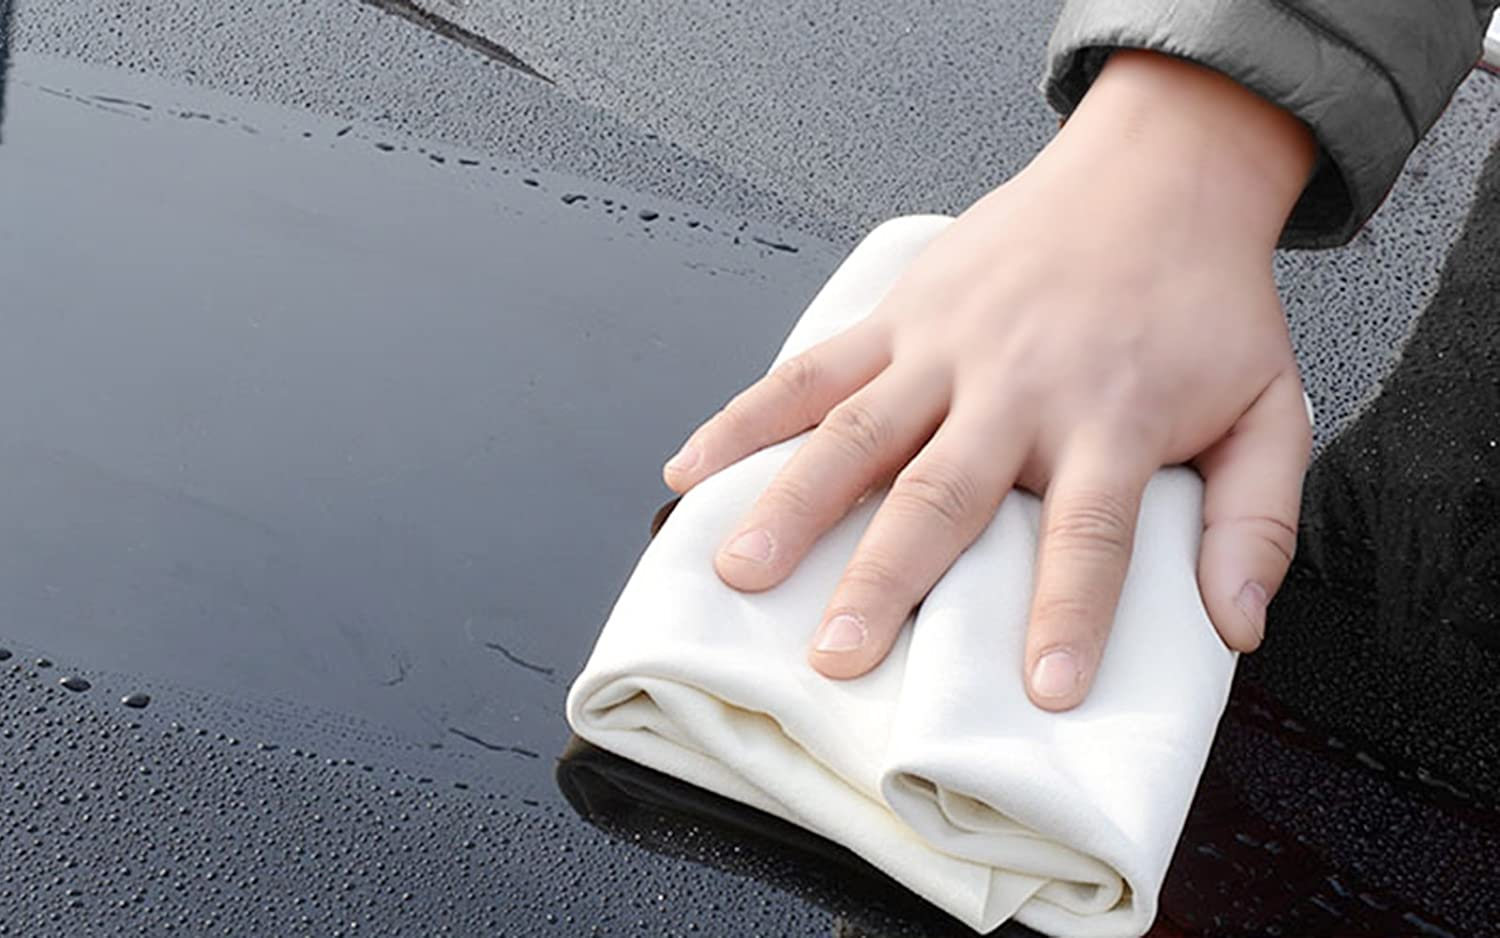 KinHwa Car Chamois Drying Towel Natural Chamois Cloth for Car Leather Super Absorbent Leather Cleaning Cloth 4.5 sq ft 4336323340